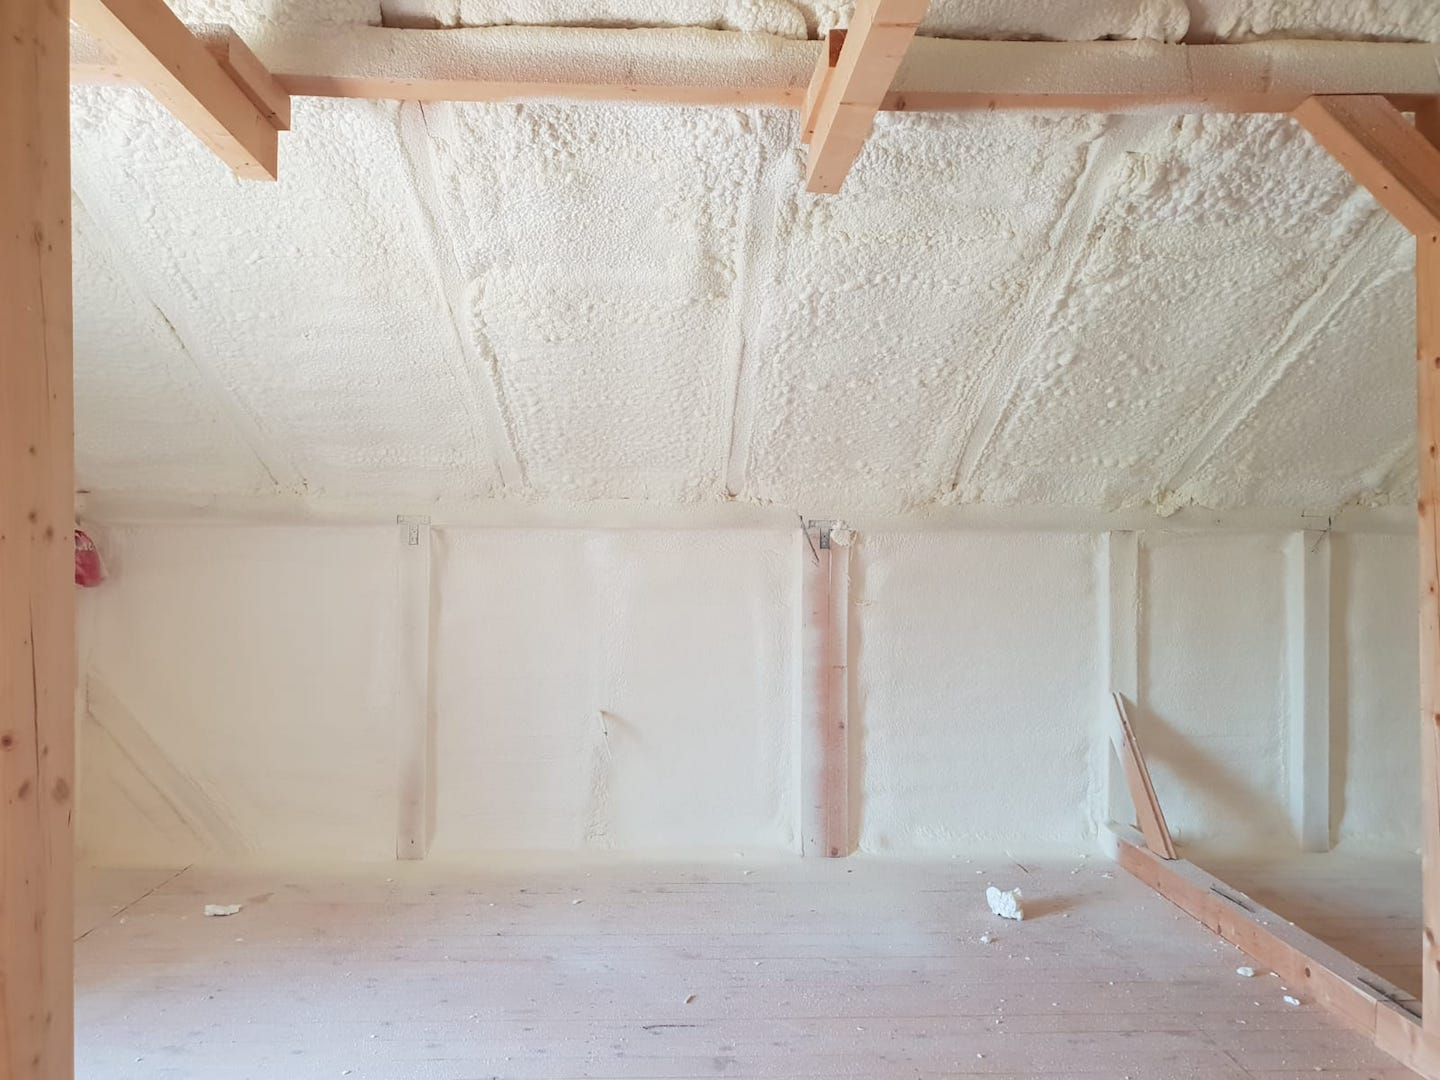 Residential Closed Cell Foam Insulation Cincinnati 01